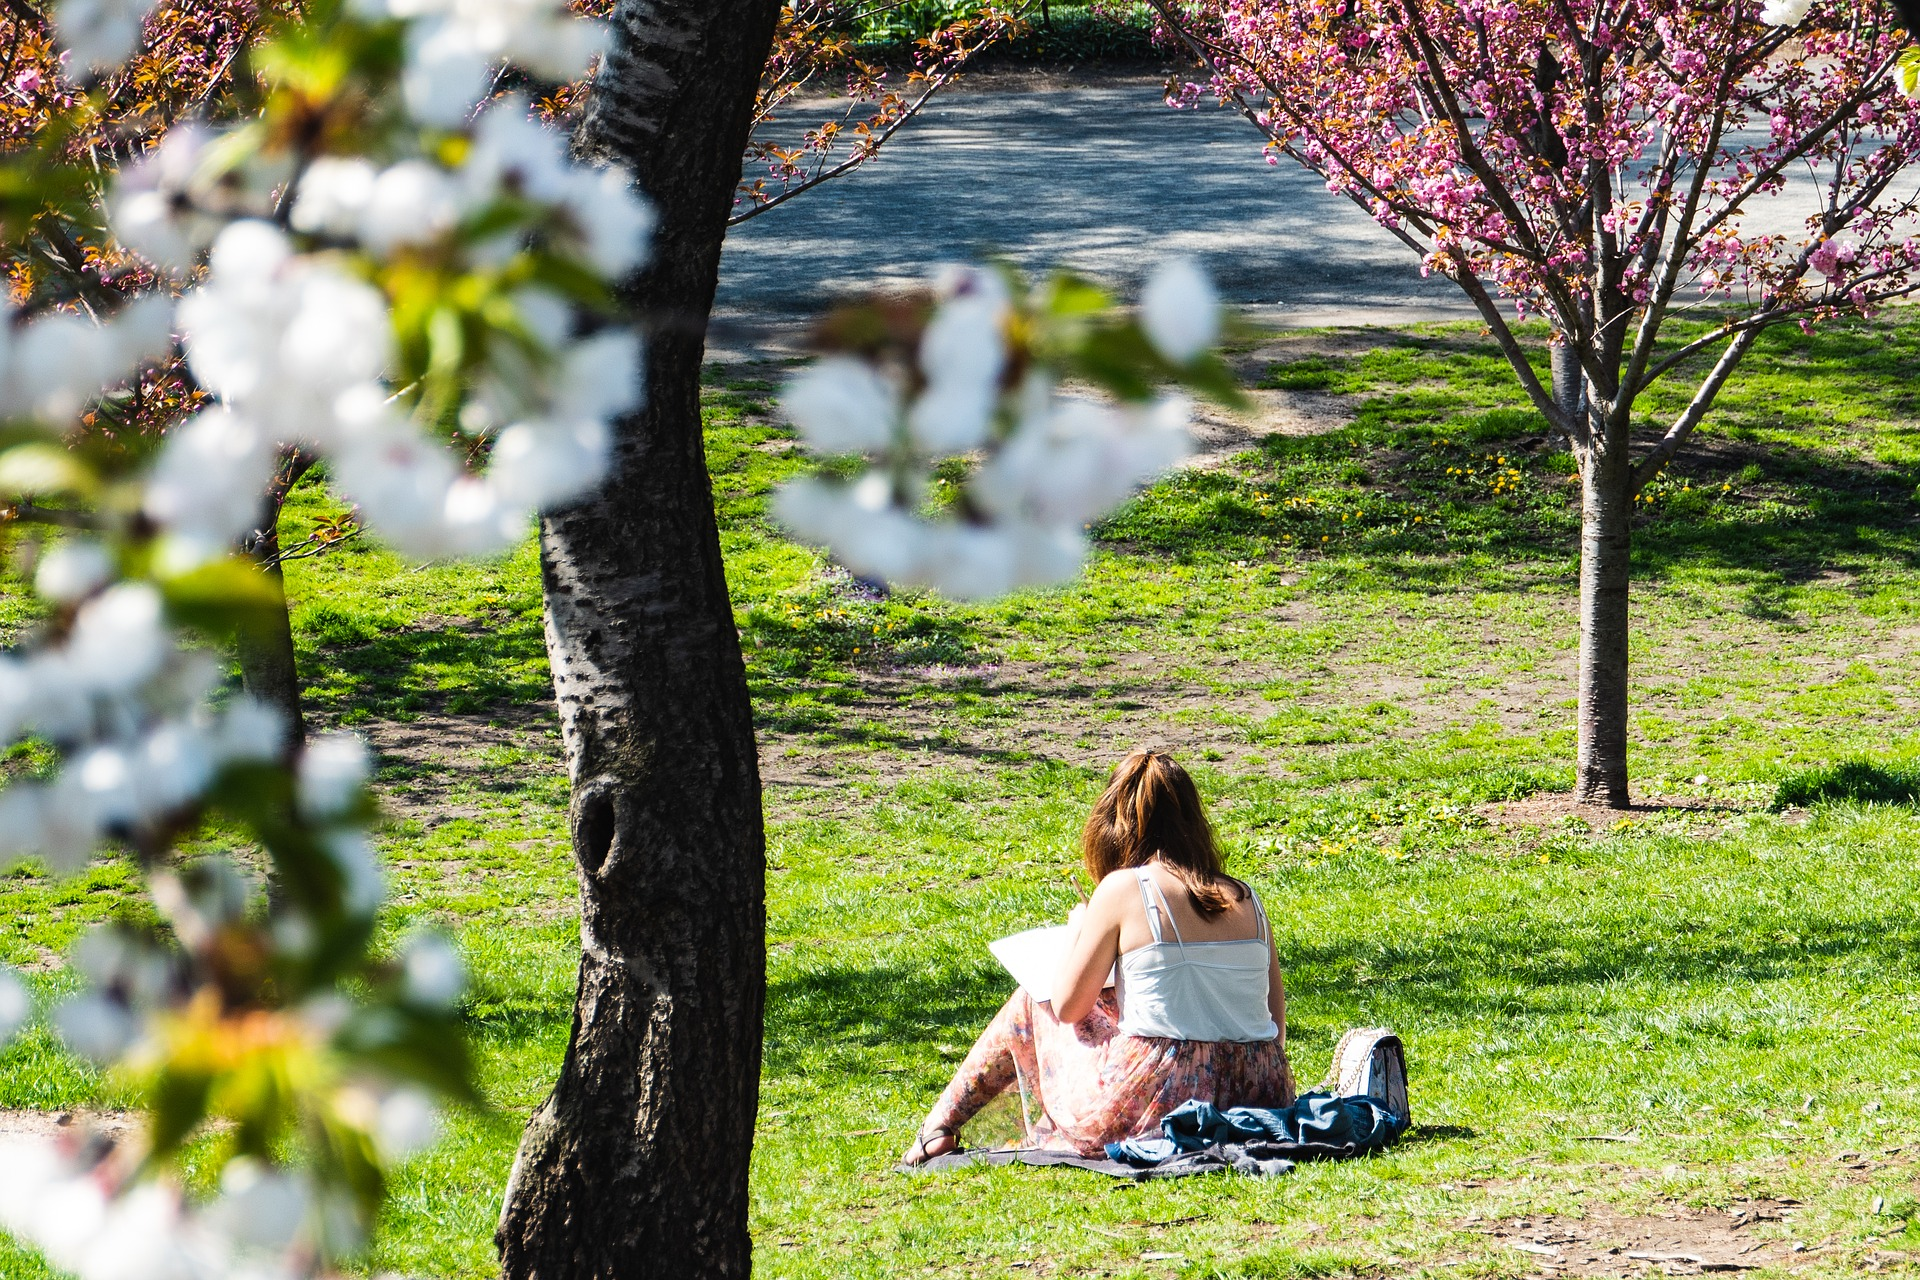 Photo of student performing course work in a park.